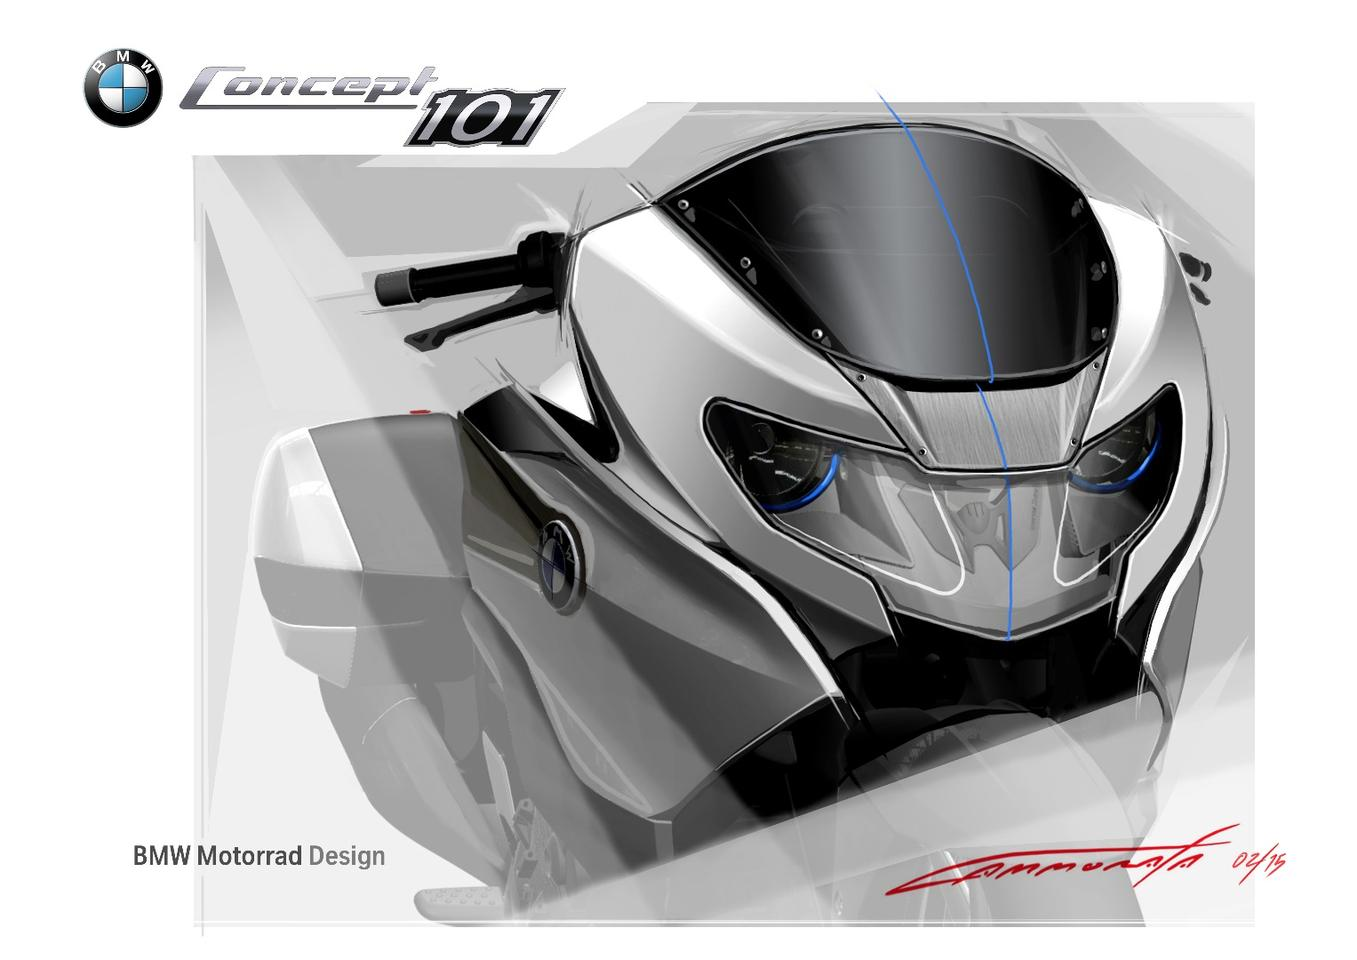 BMW Concept 101 - concept drawings